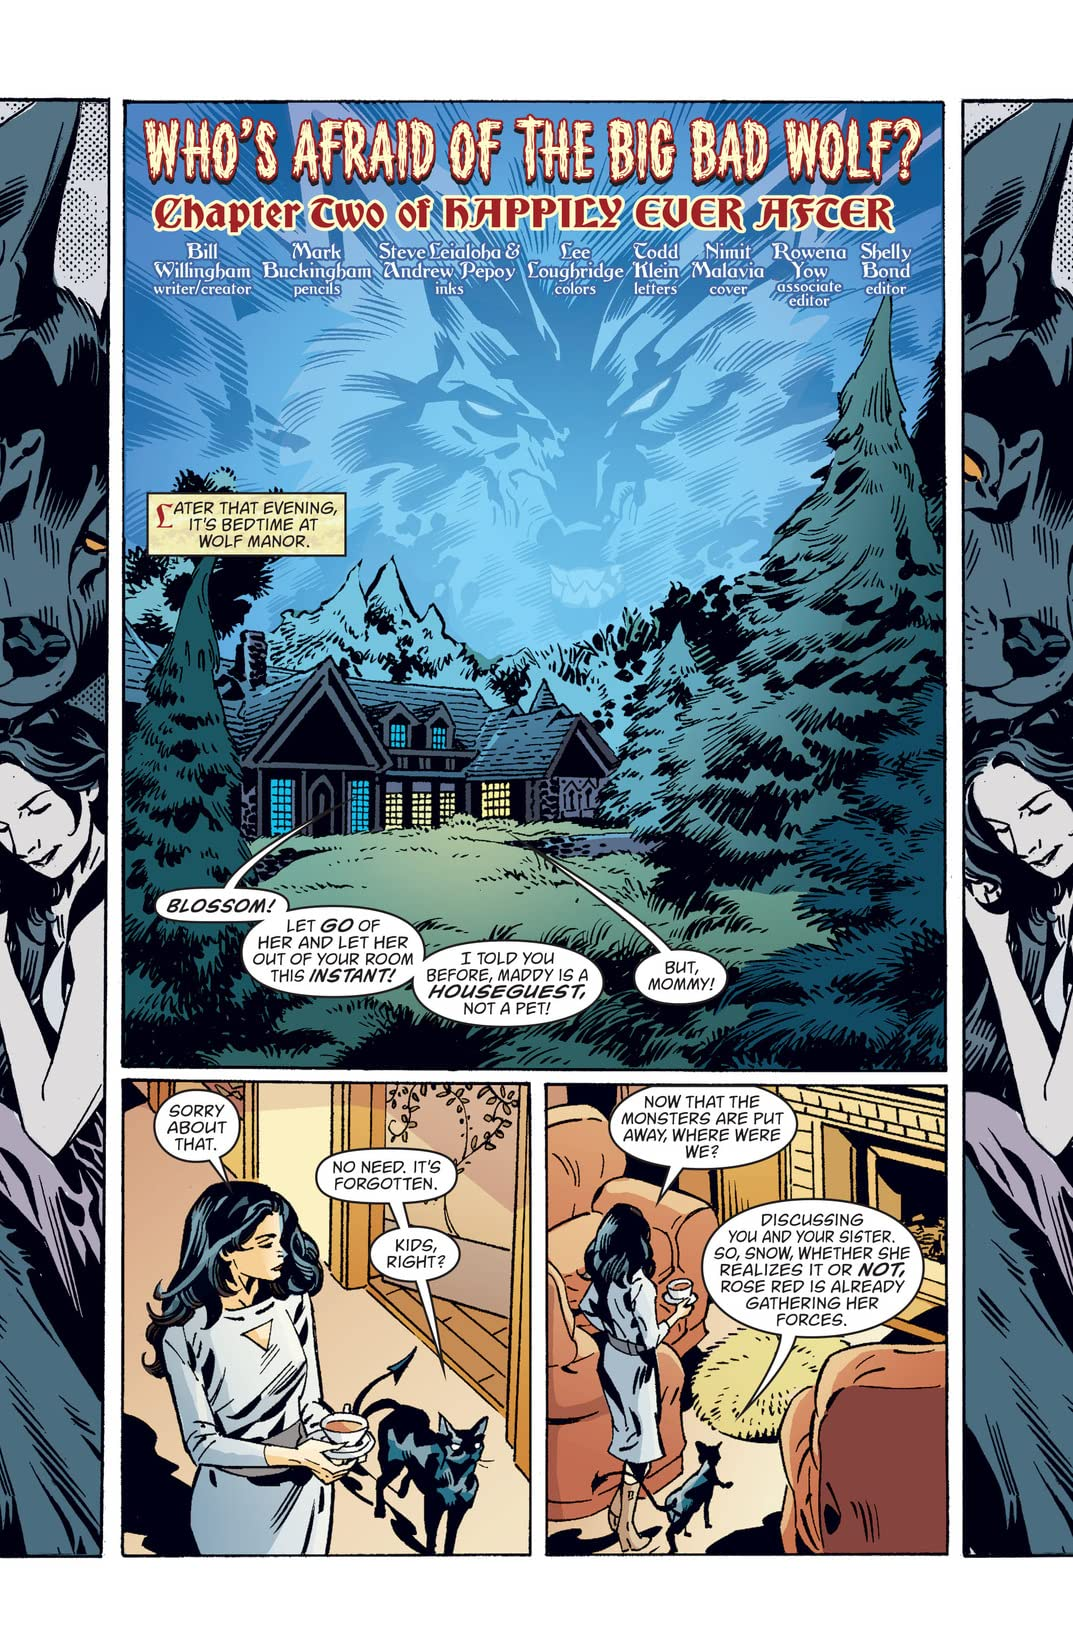 Fables #142